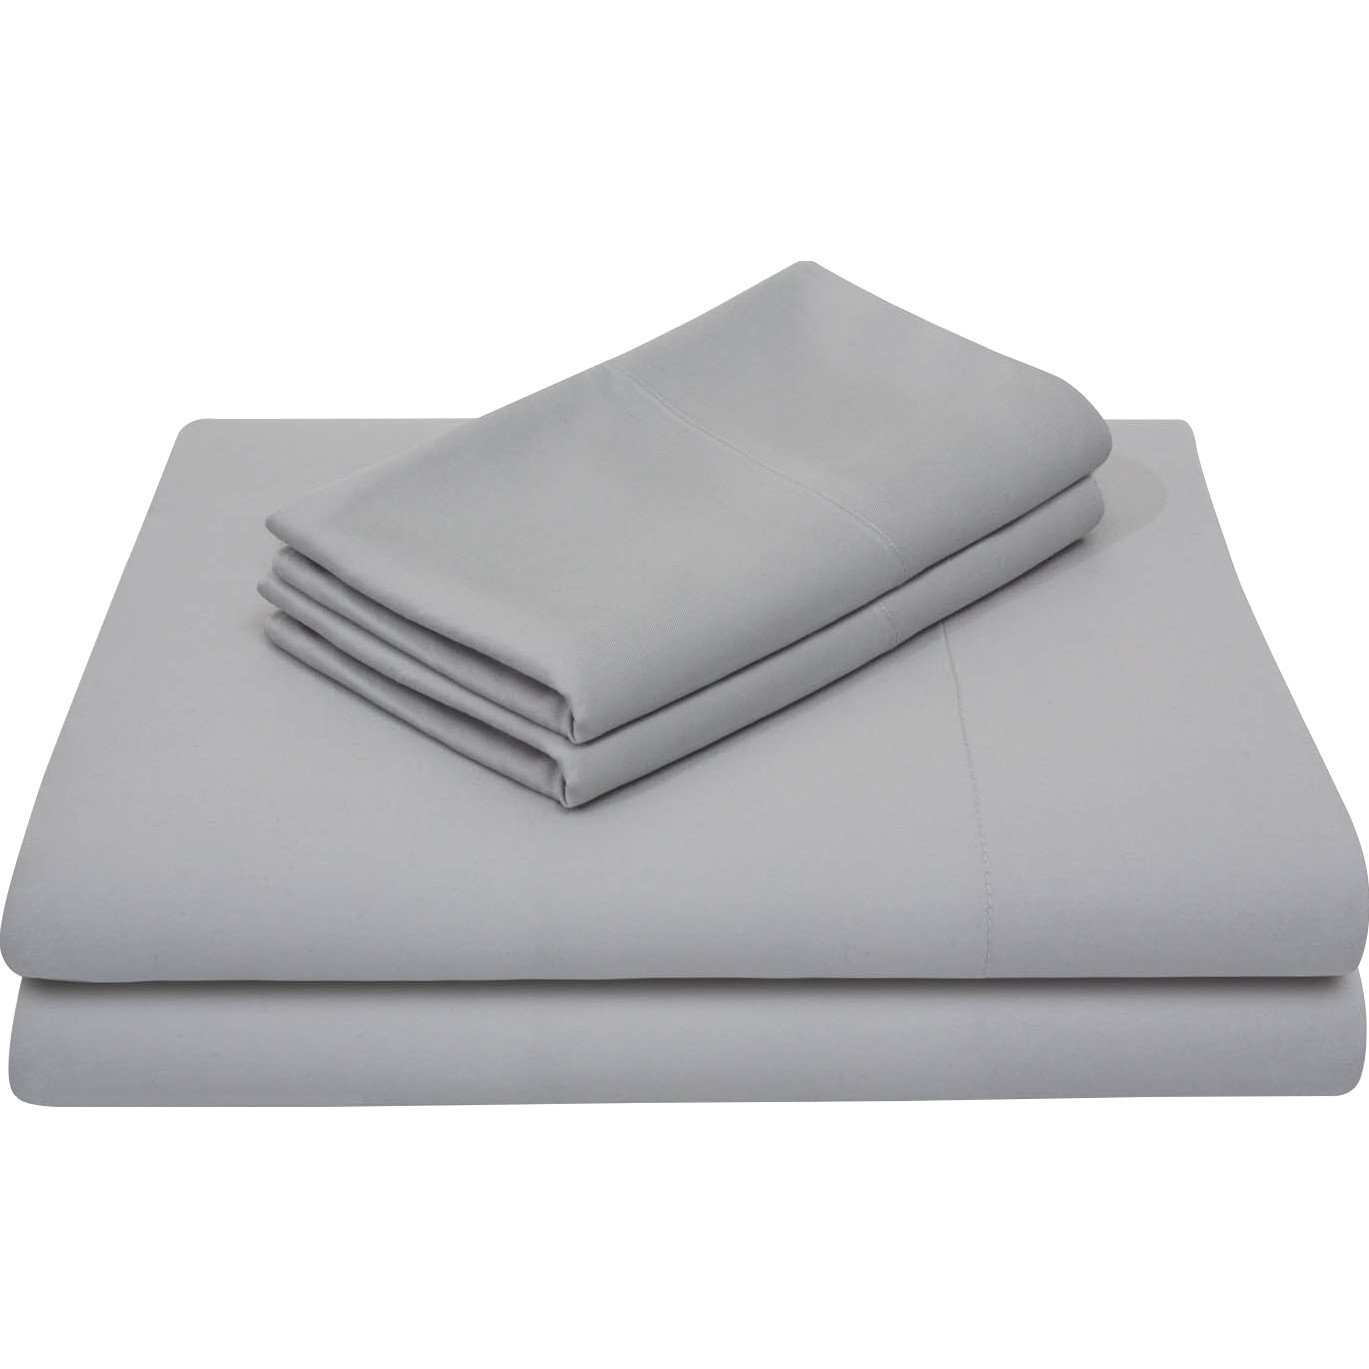 VEGAS HOTEL COLLECTION Home Quality - 1 Piece Flat Sheet ( Top Sheet ) Only - 100% Egyptian Cotton ( California King Size ) Hotel Series 1000 Thread Count Solid Color ( Silver Grey )